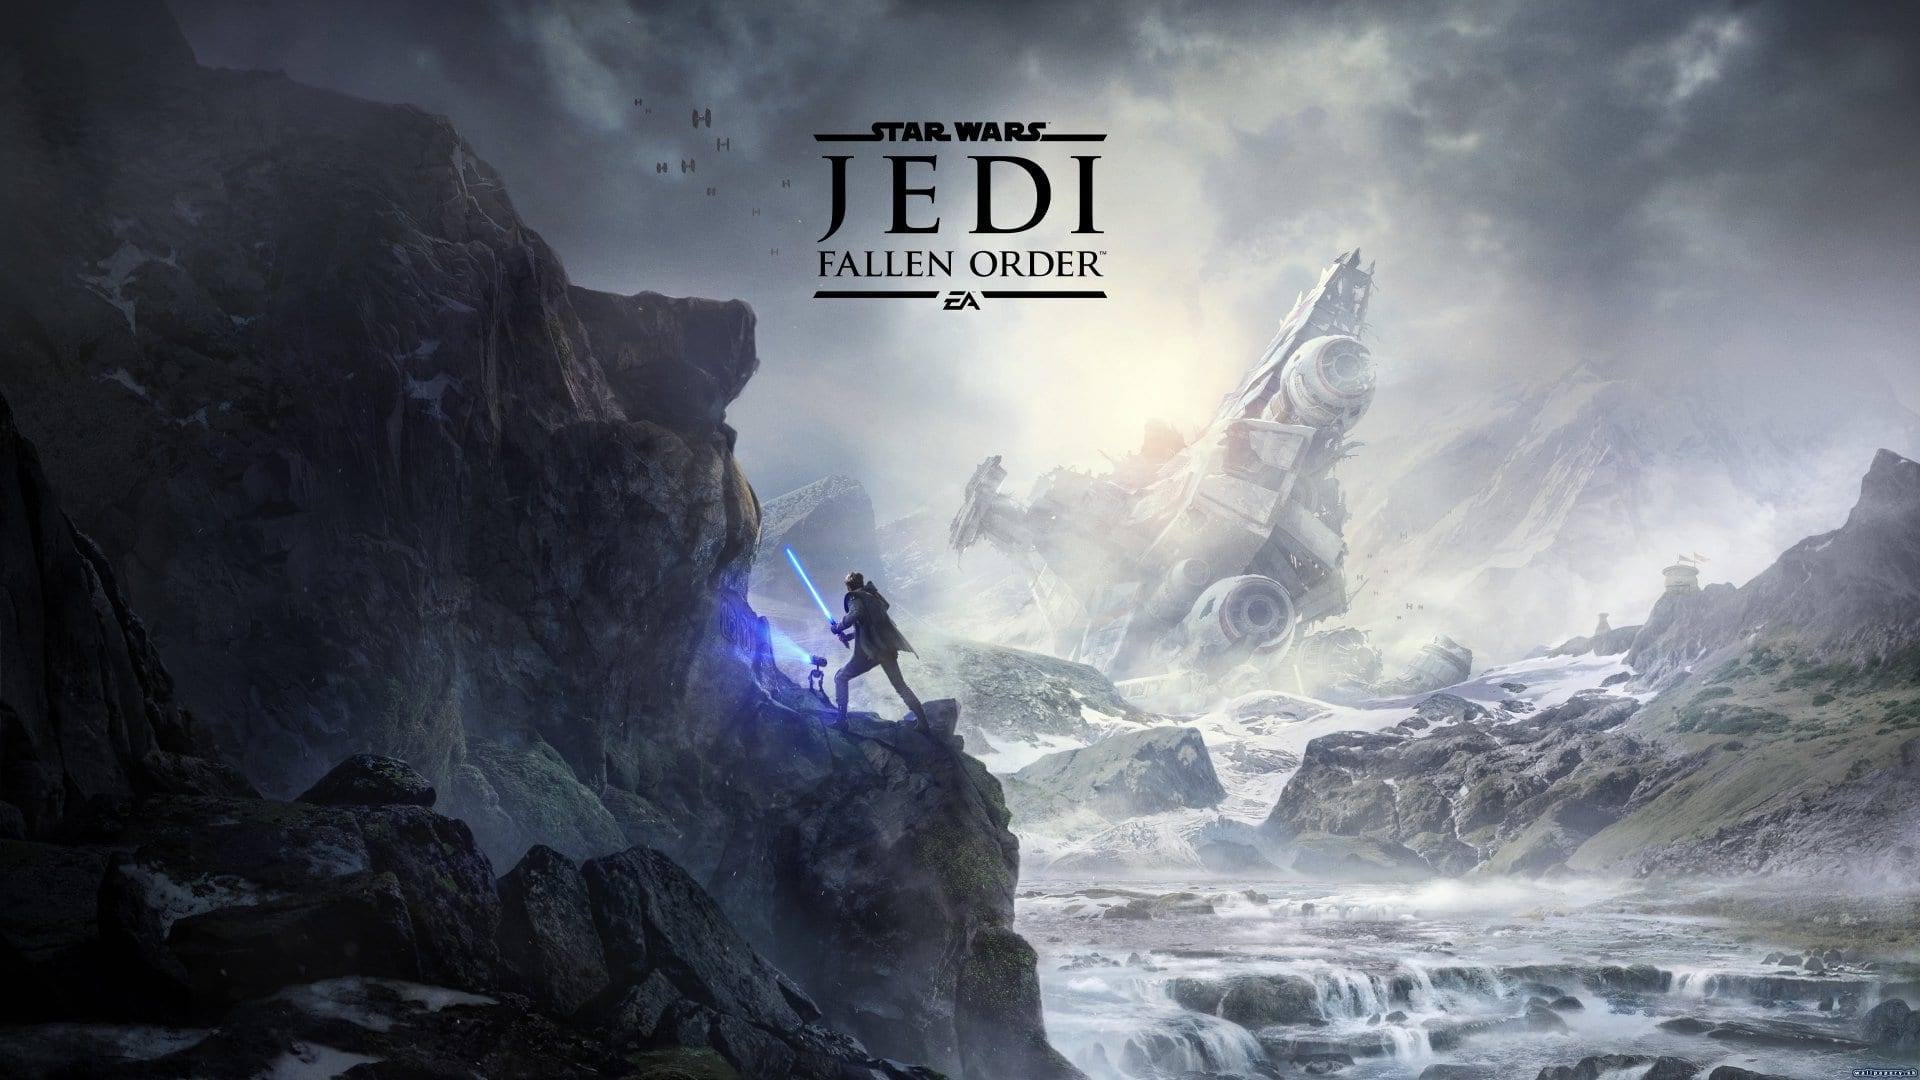 10 4k Hd Star Wars Jedi Fallen Order Wallpapers You Need To